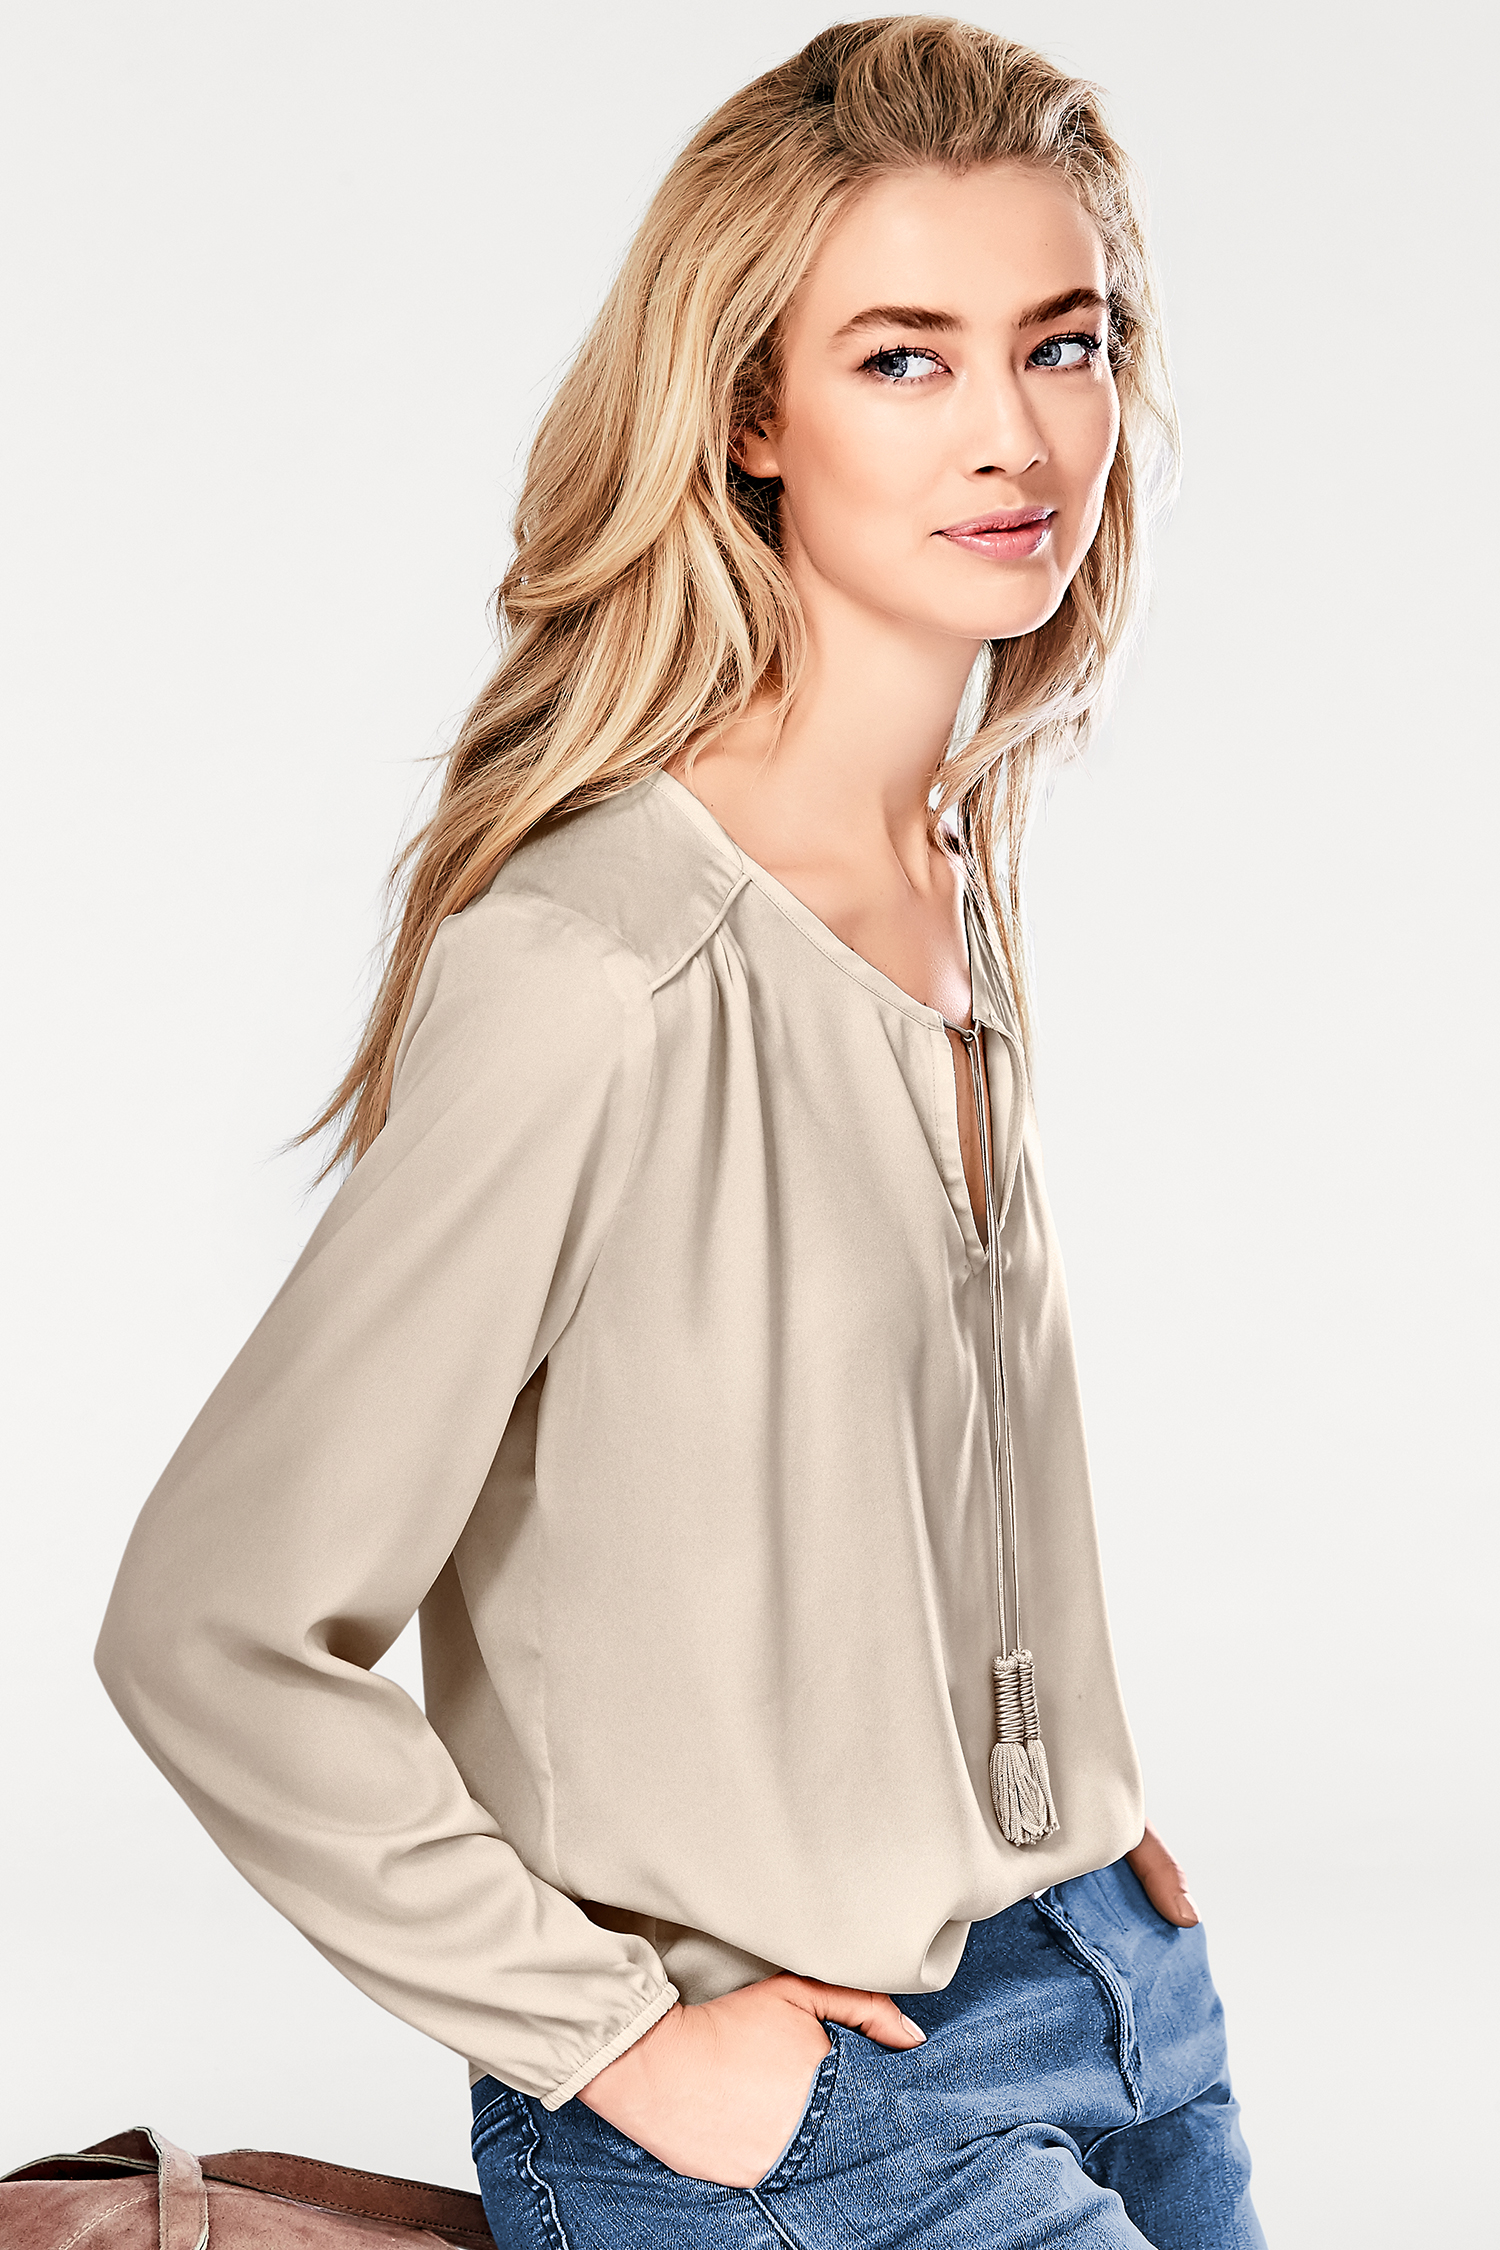 Chiffon Blouse for work or play